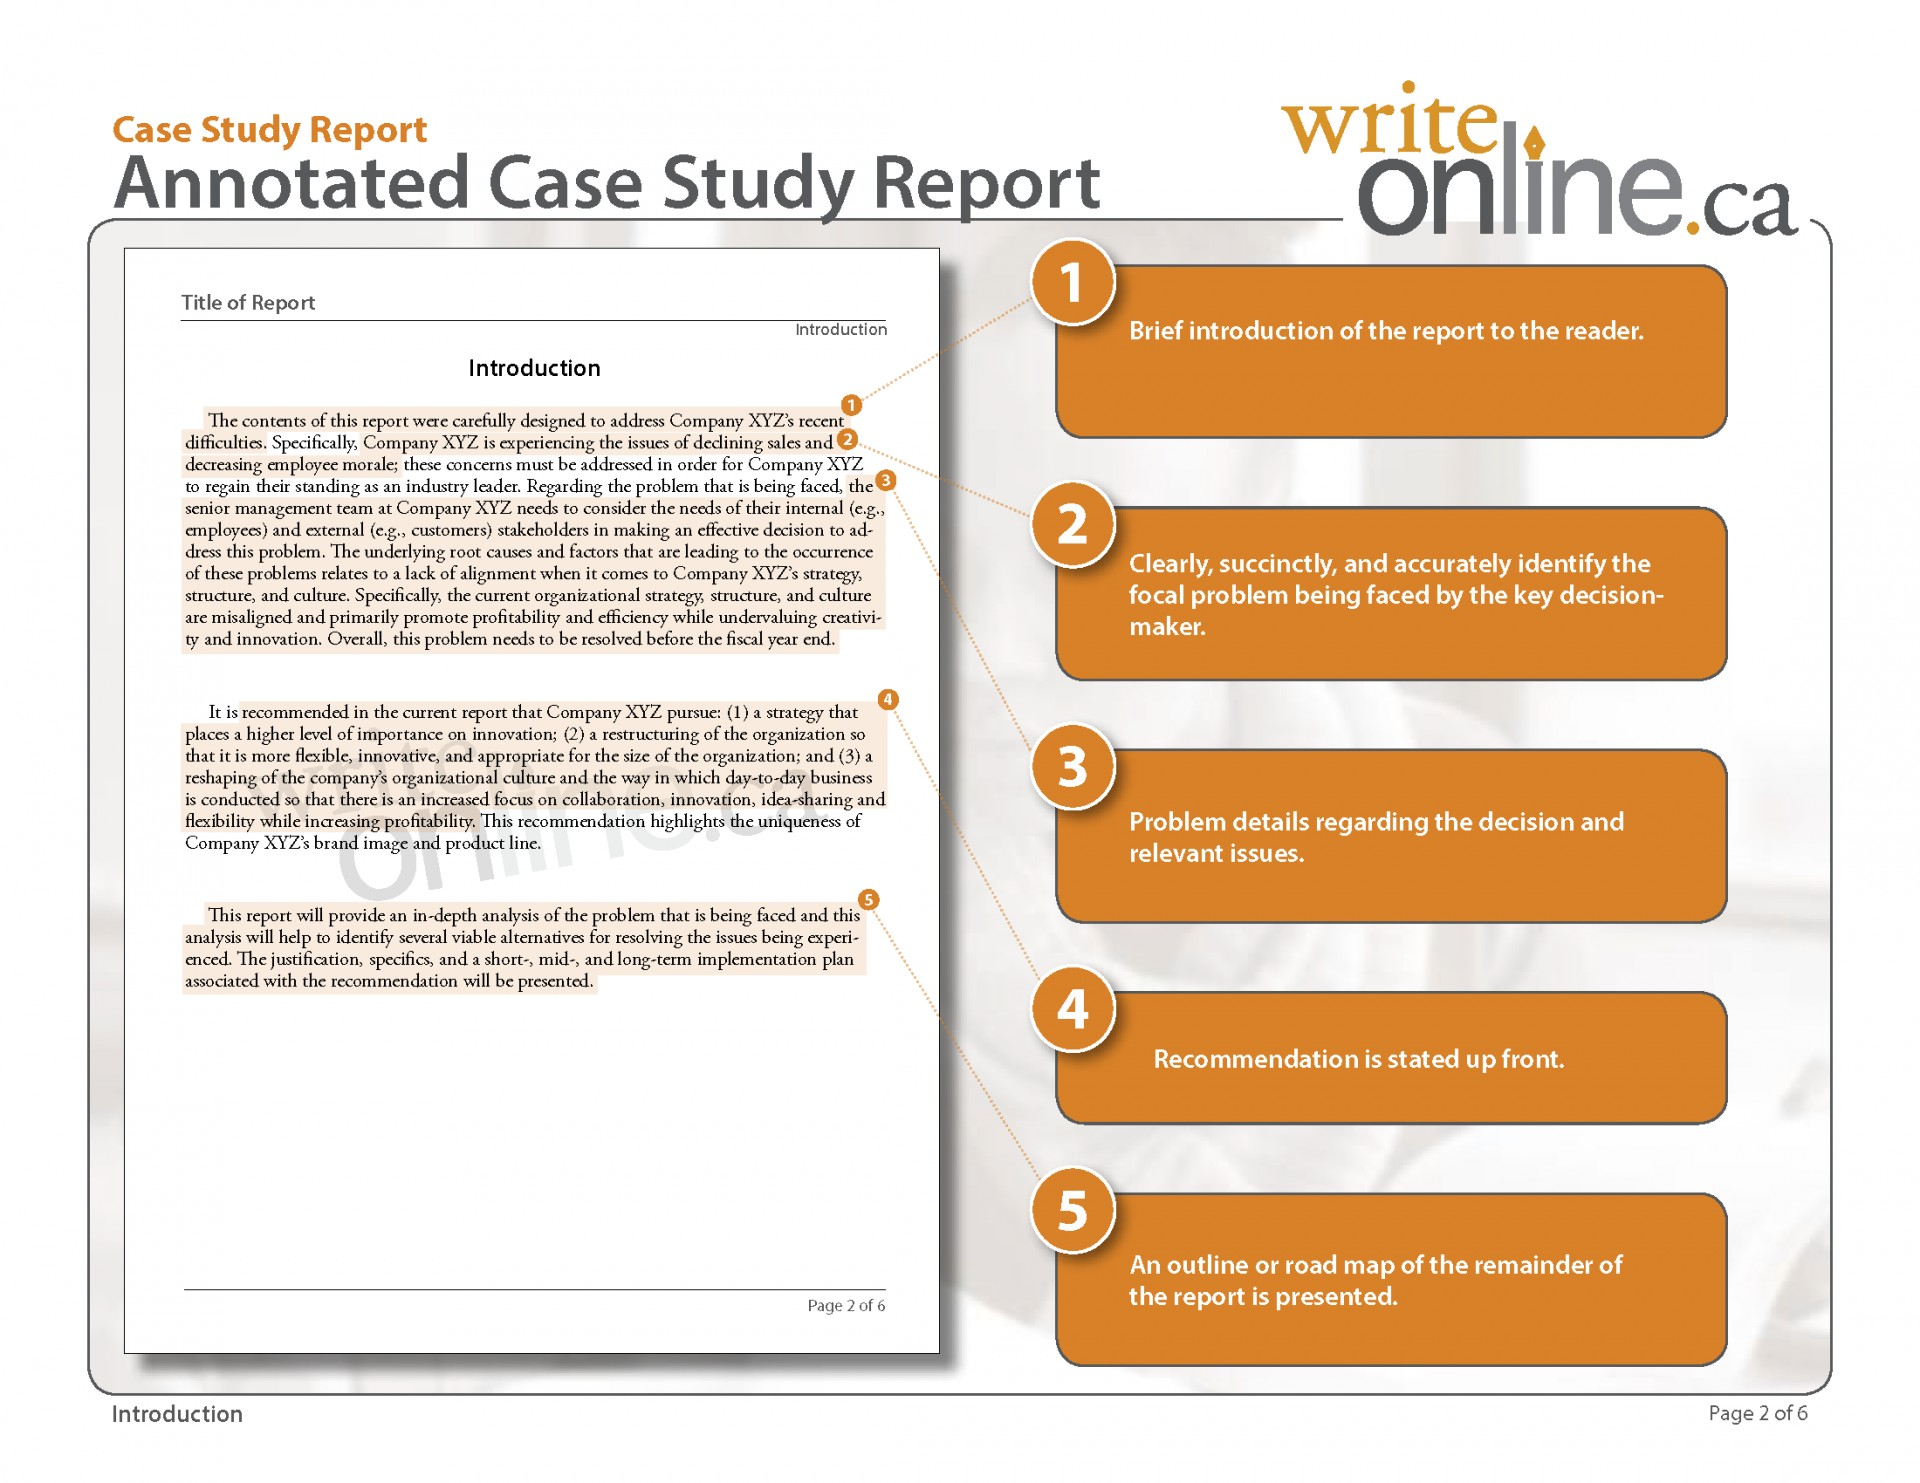 006 Research Paper Casestudy Annotatedfull Page 2 Parts Of And Its Definition Staggering A Pdf 1920